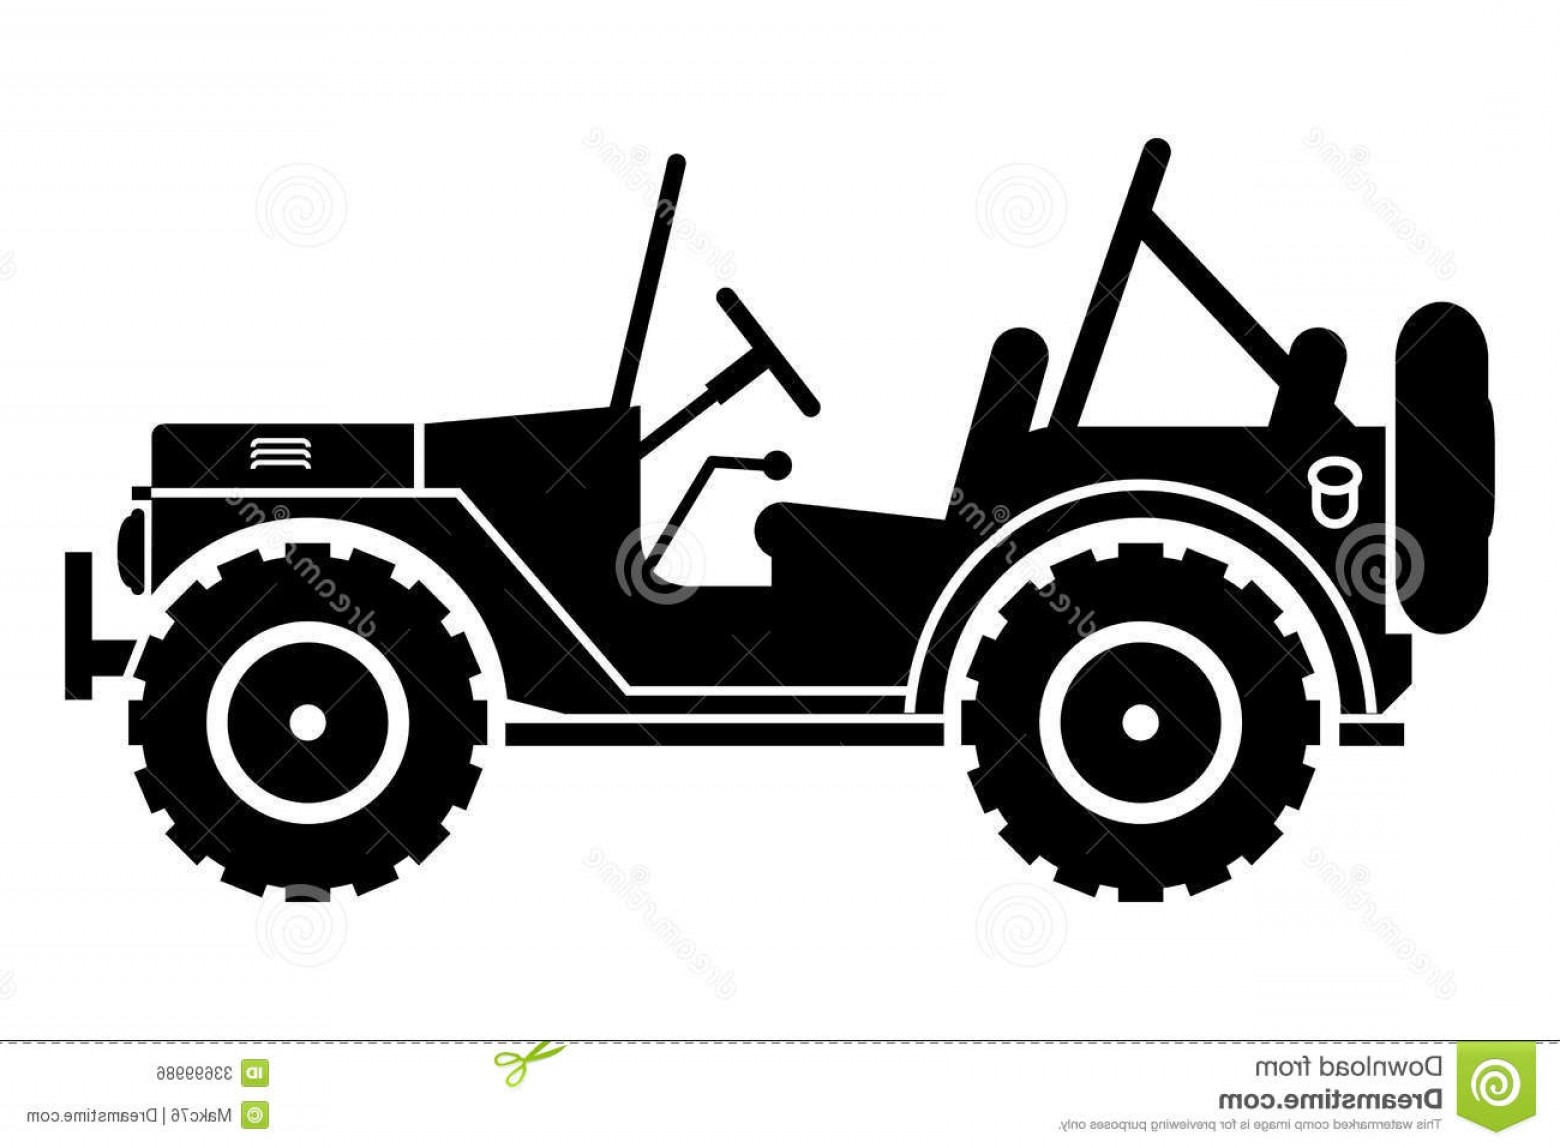 Jeep Tire Vector: Royalty Free Stock Image Jeep Silhouette Gin Suv Open Top Image